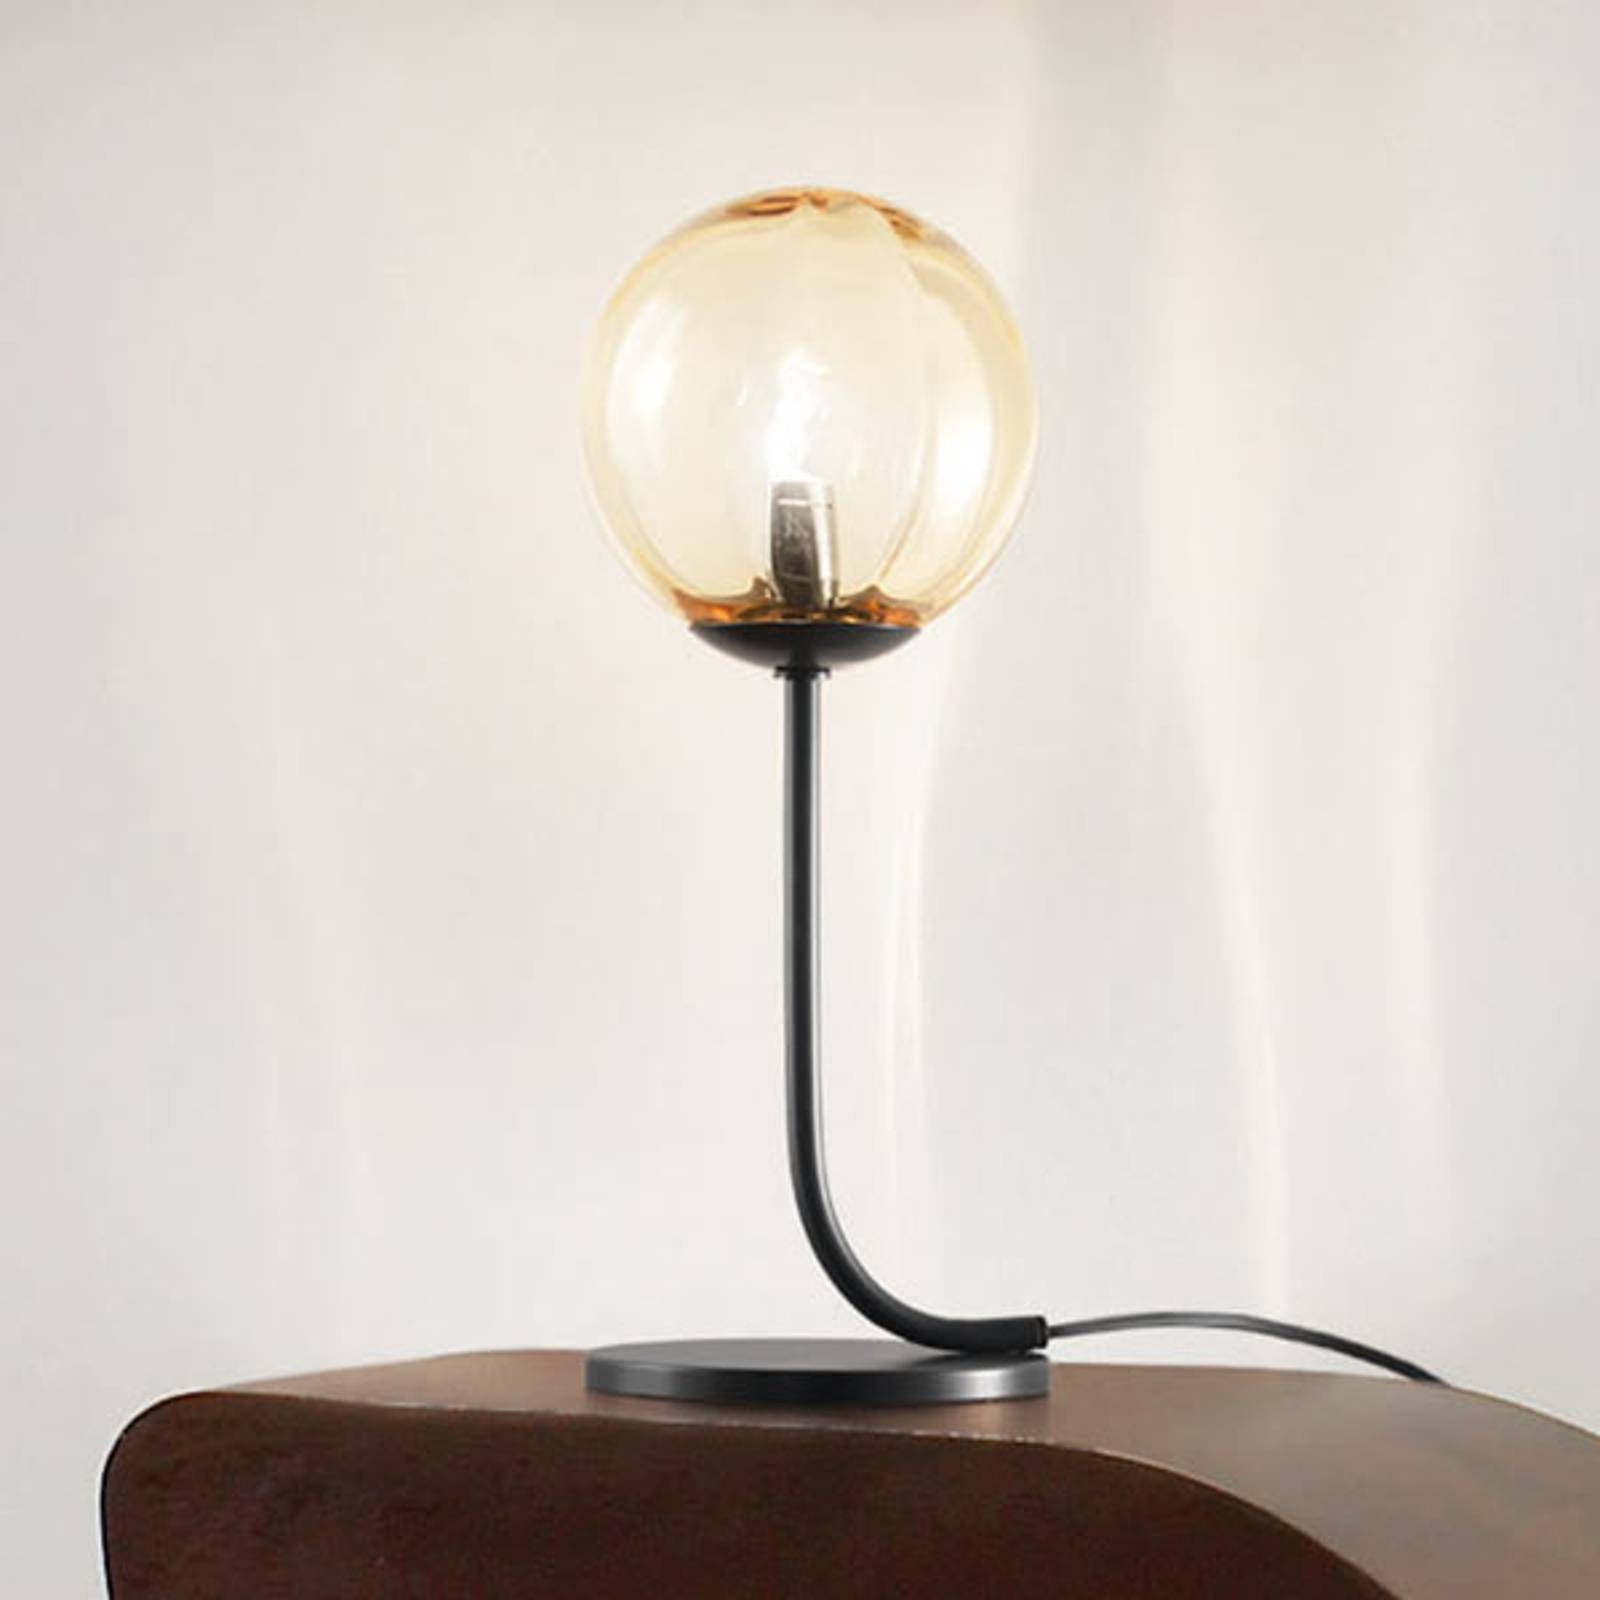 Puppet designer table lamp, Murano glass from Vistosi